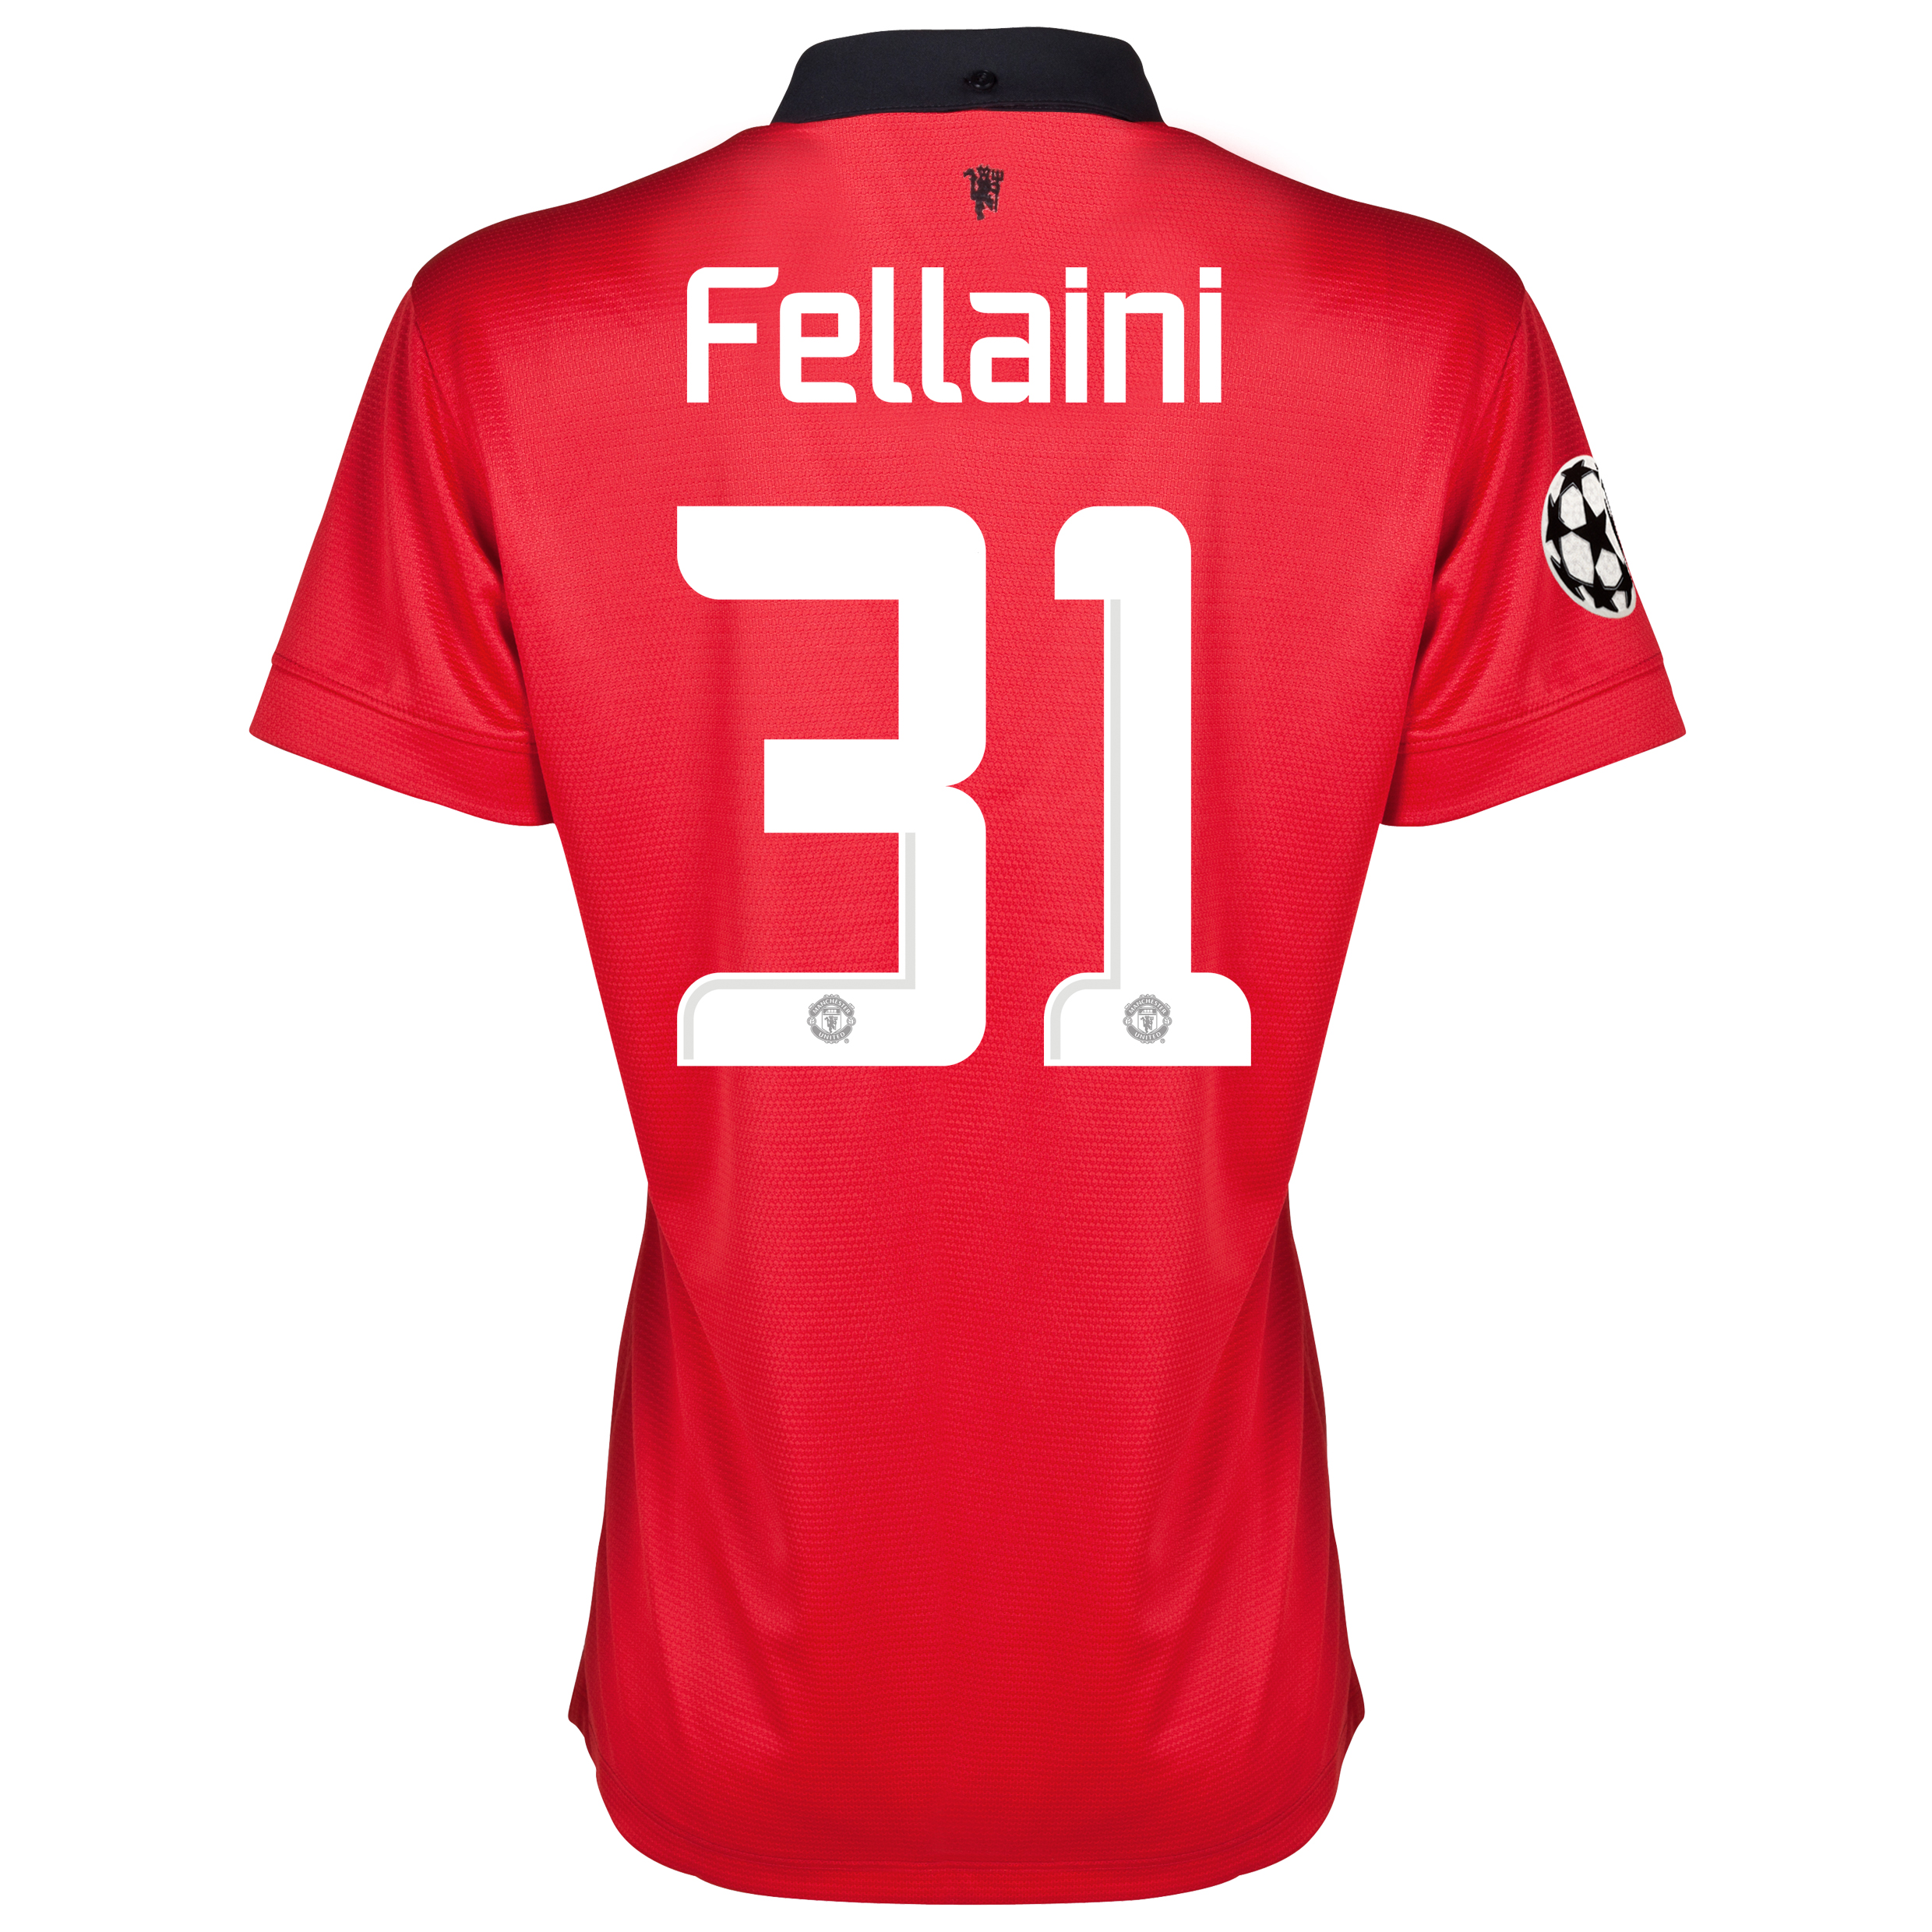 Manchester United UEFA Champions League Home Shirt 2013/14 - Womens with Fellaini 31 printing